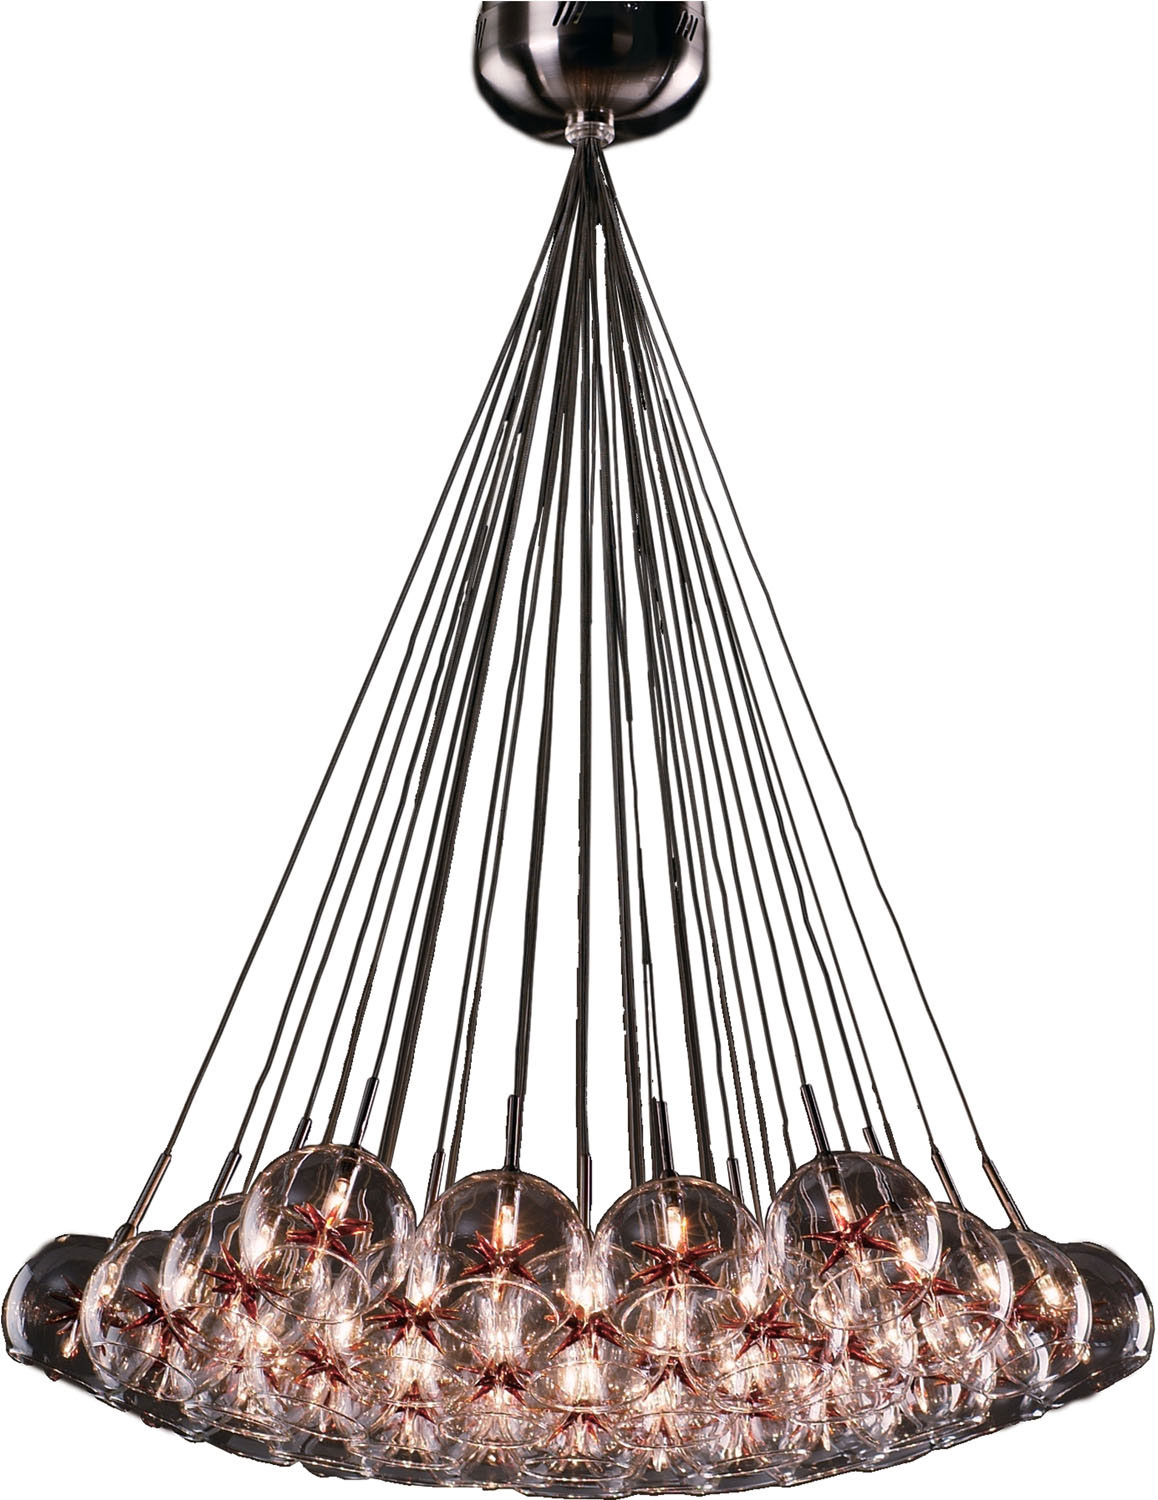 37 Light Pendant from the Starburst collection by ET2 E20112 25